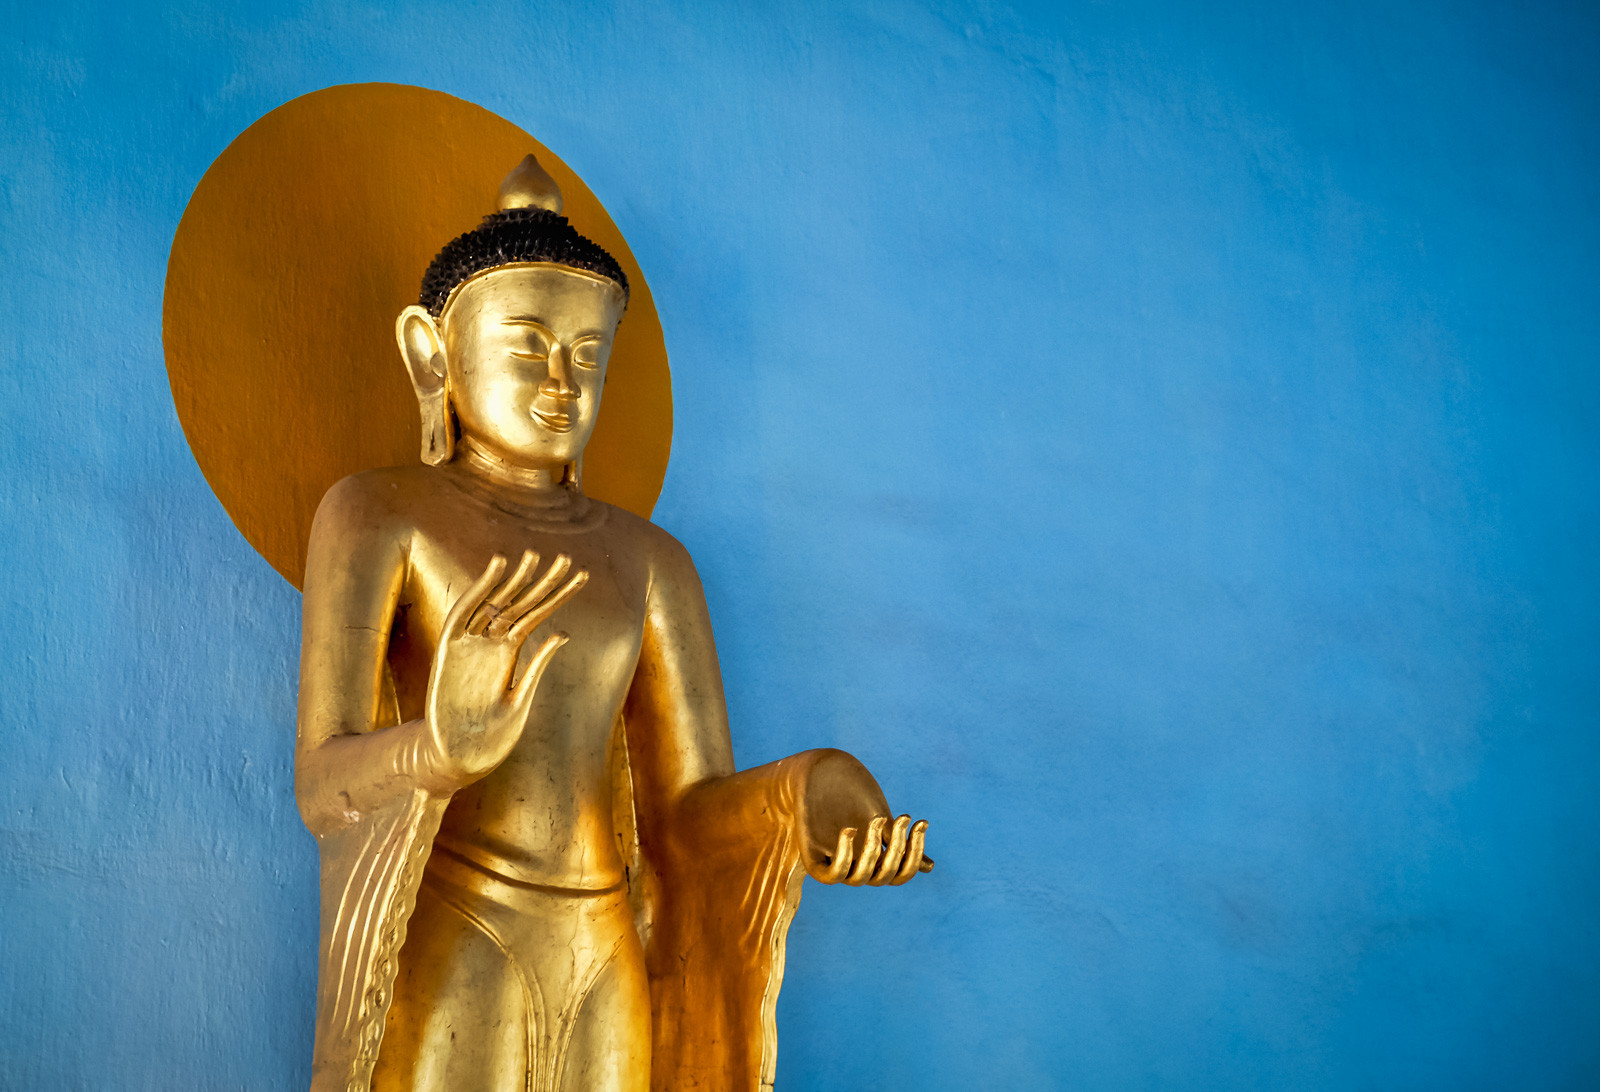 PDI - The Lone Buddah by Pauline McAleese (7 marks)